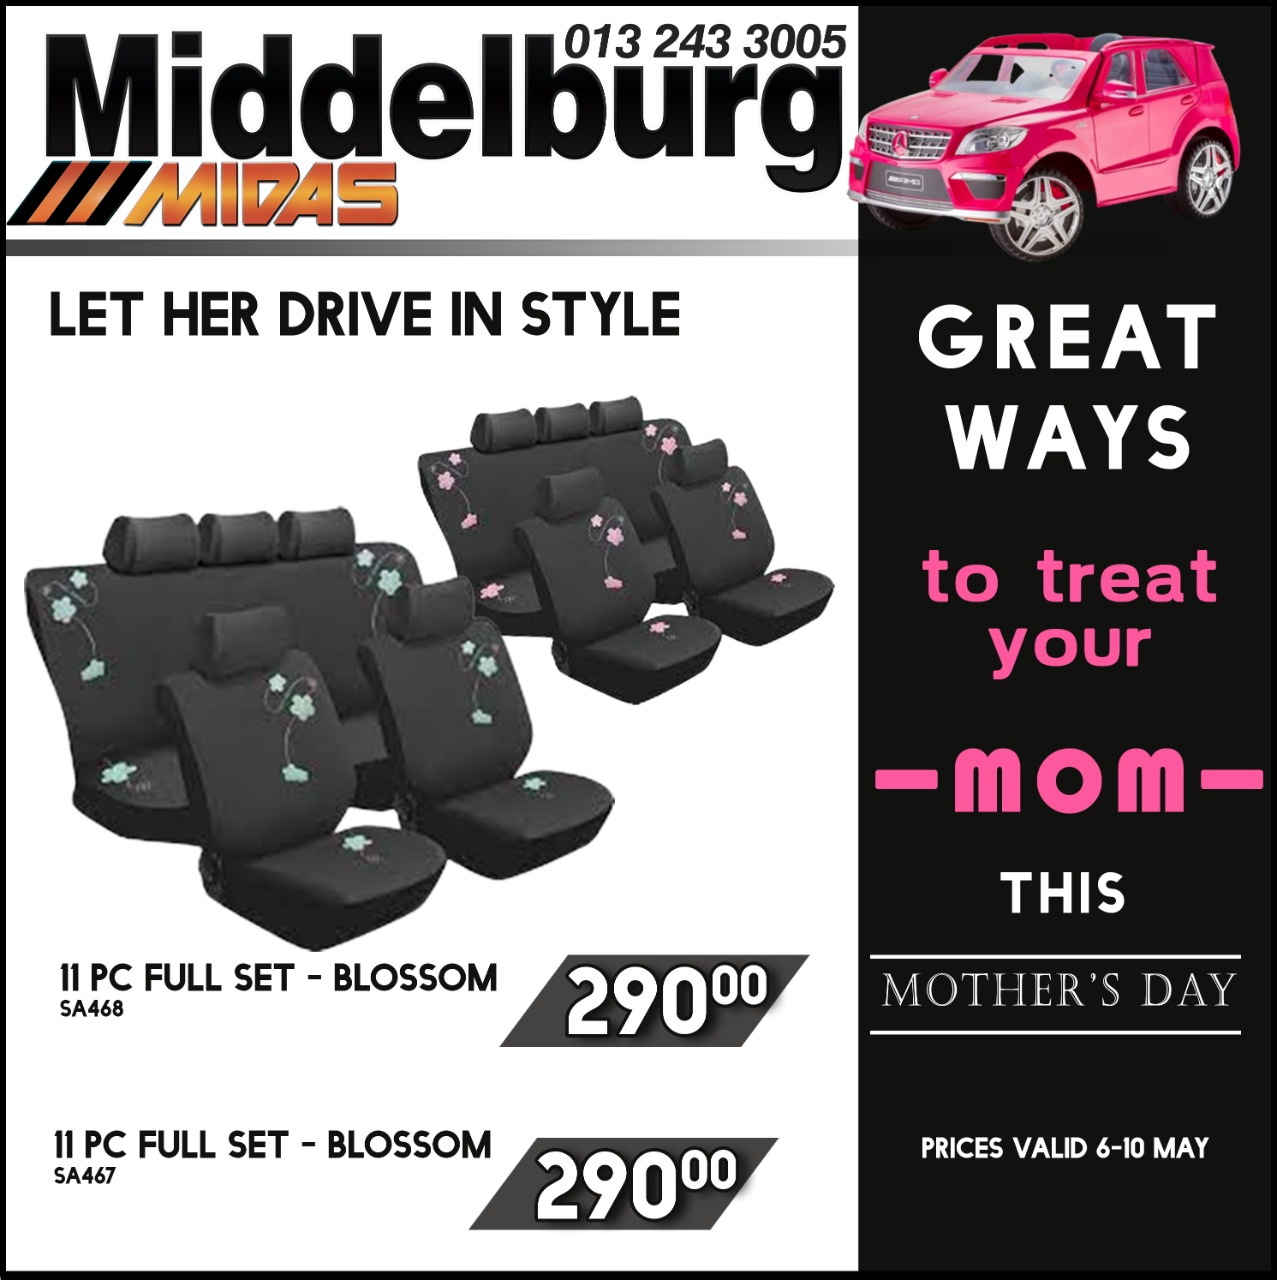 Great ways to Treat your Mom this Mother's Day at Middelburg Midas -Sparesworld!